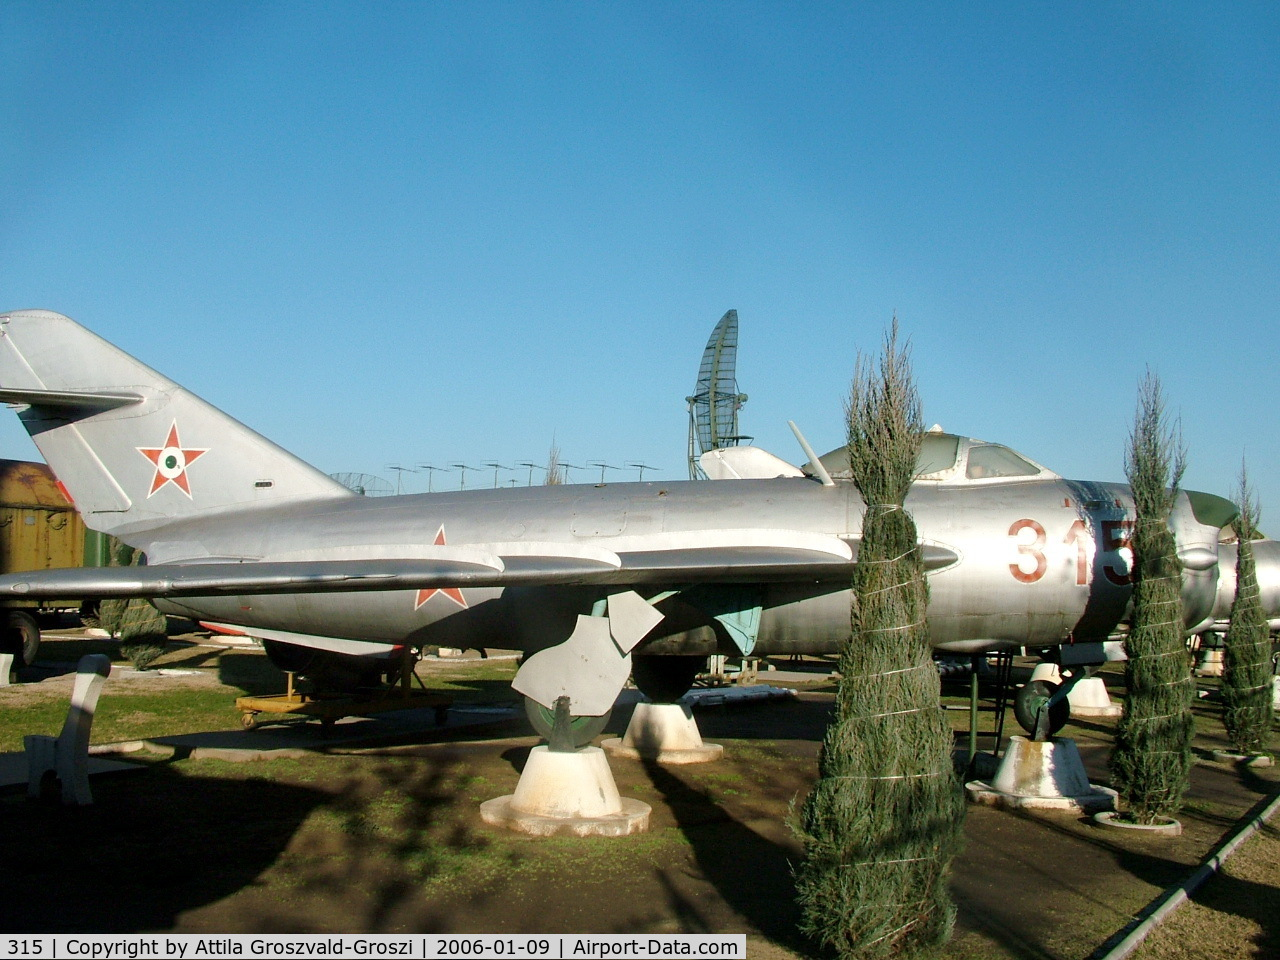 315, 1955 Mikoyan-Gurevich MiG-17PF C/N 0315, Kecel Military technical park, Hungary